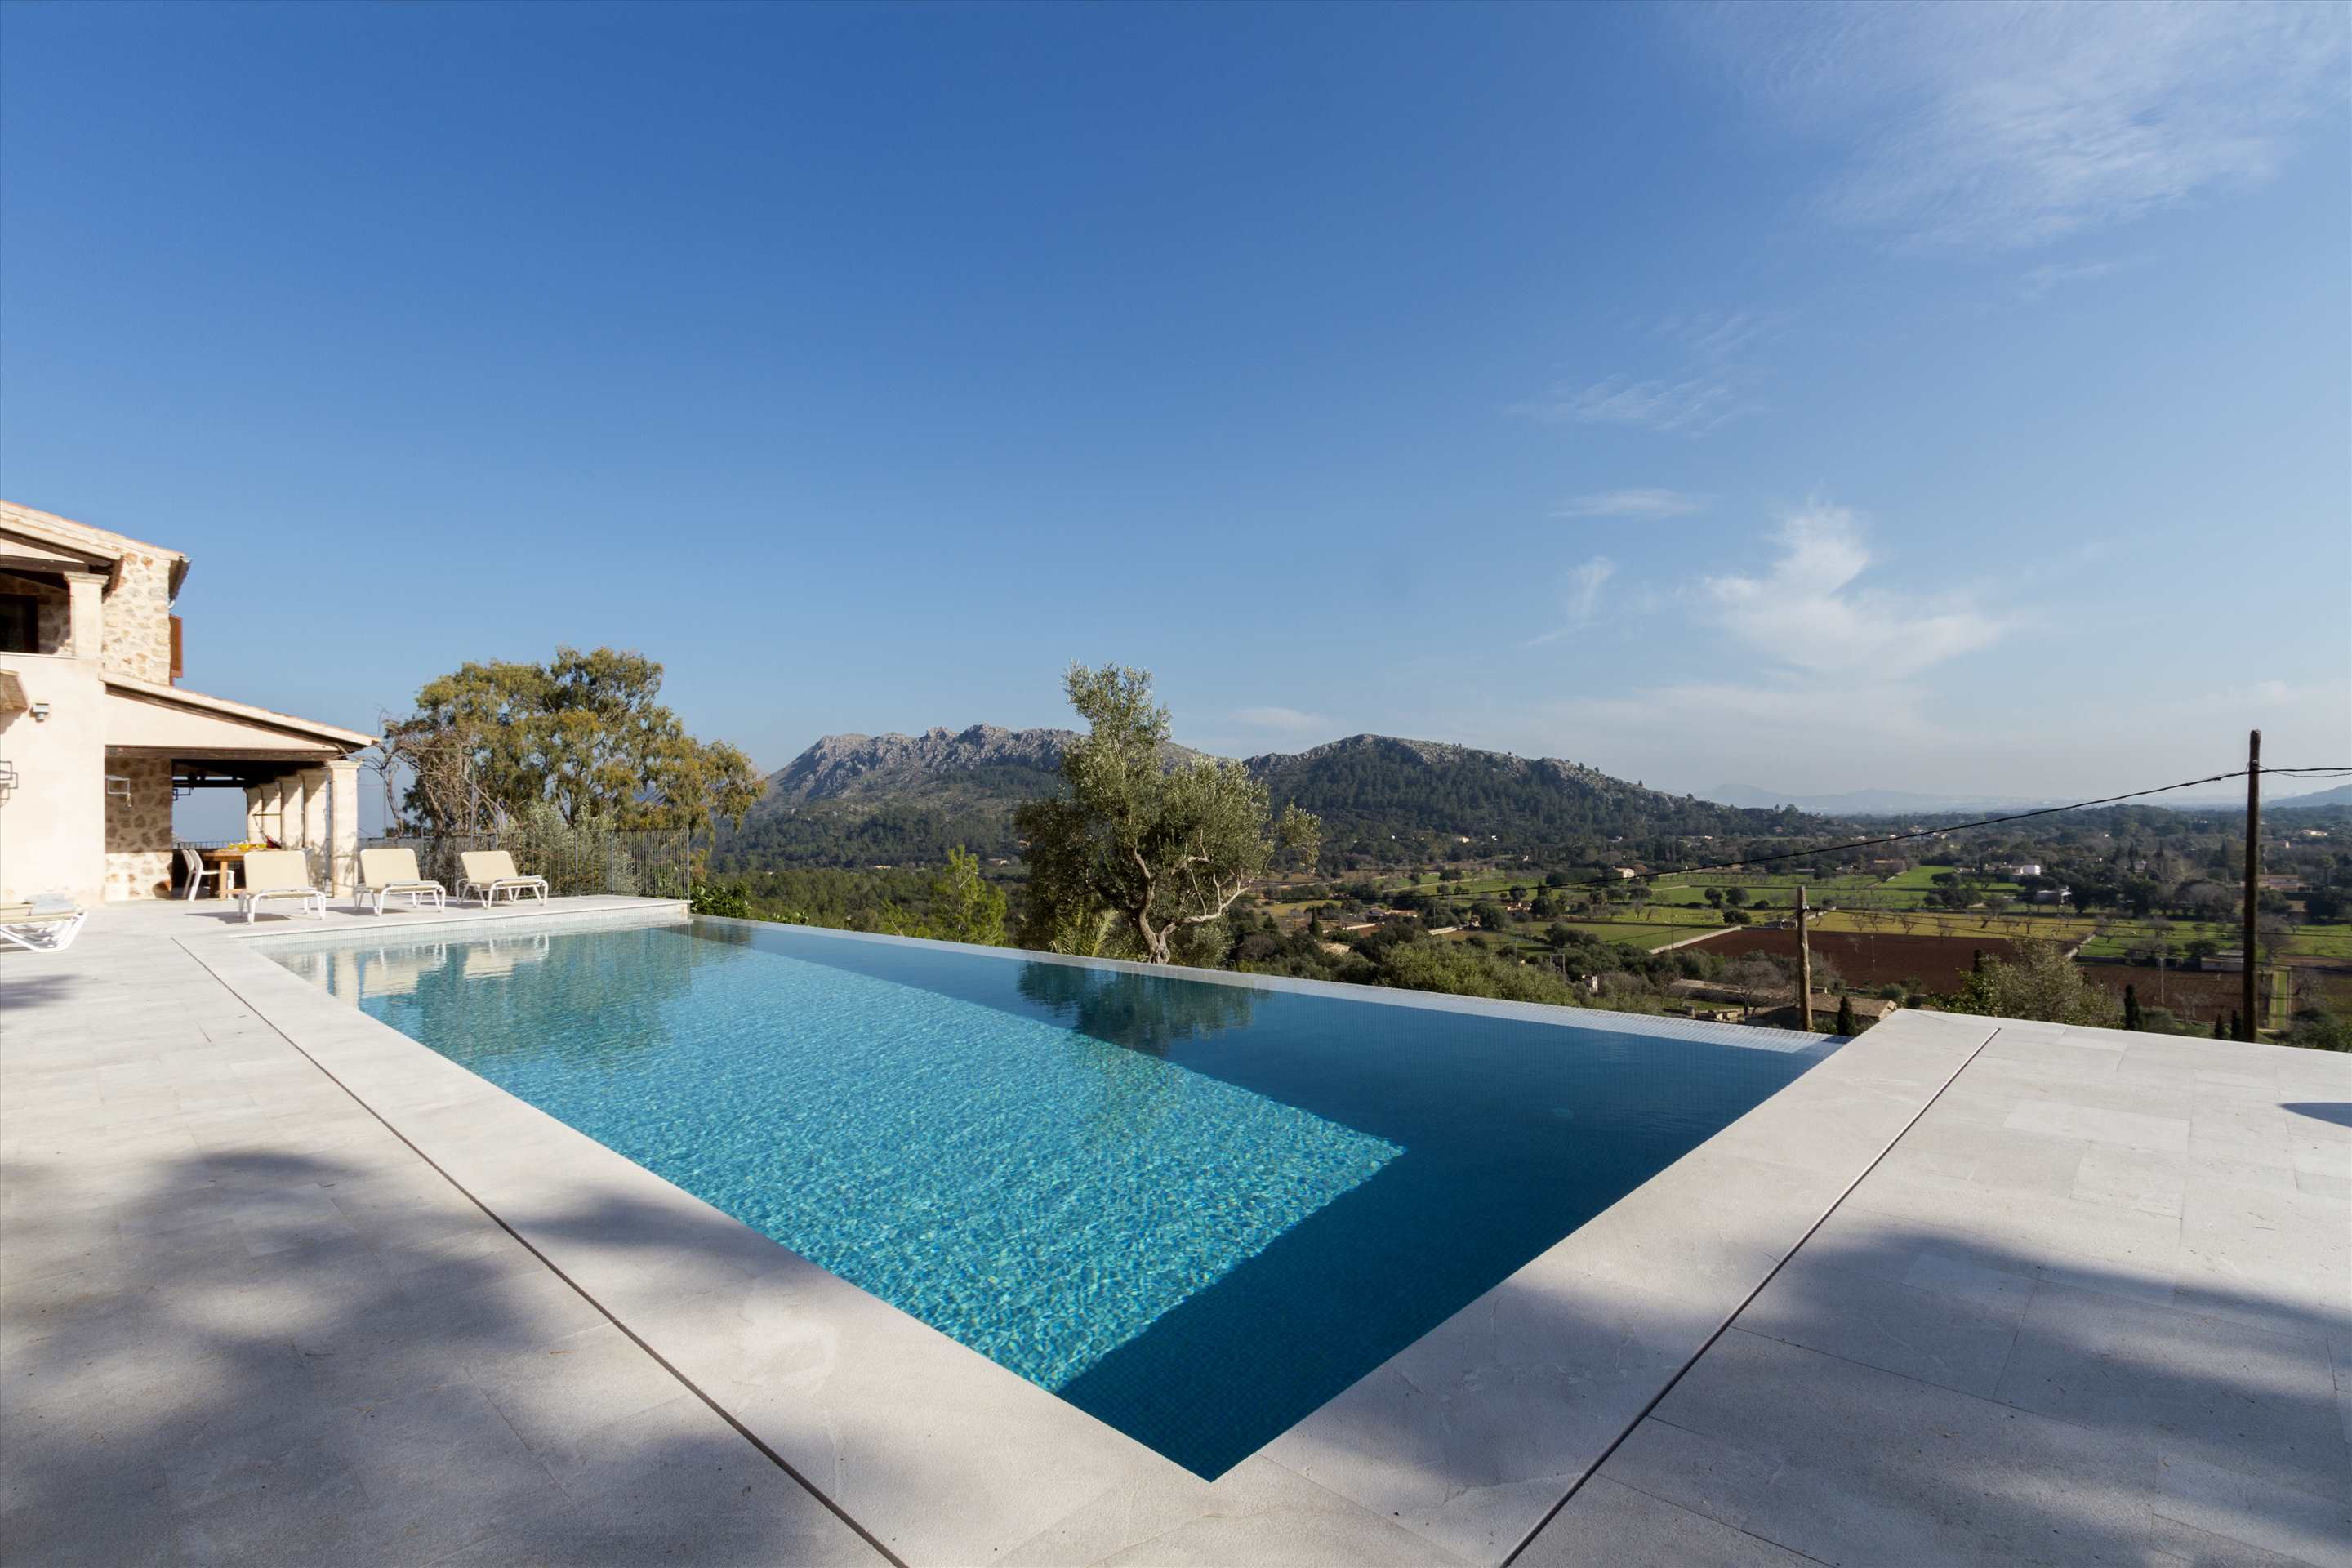 Villa La Font , 5 bedroom villa in Pollensa & Puerto Pollensa , Majorca Photo #16